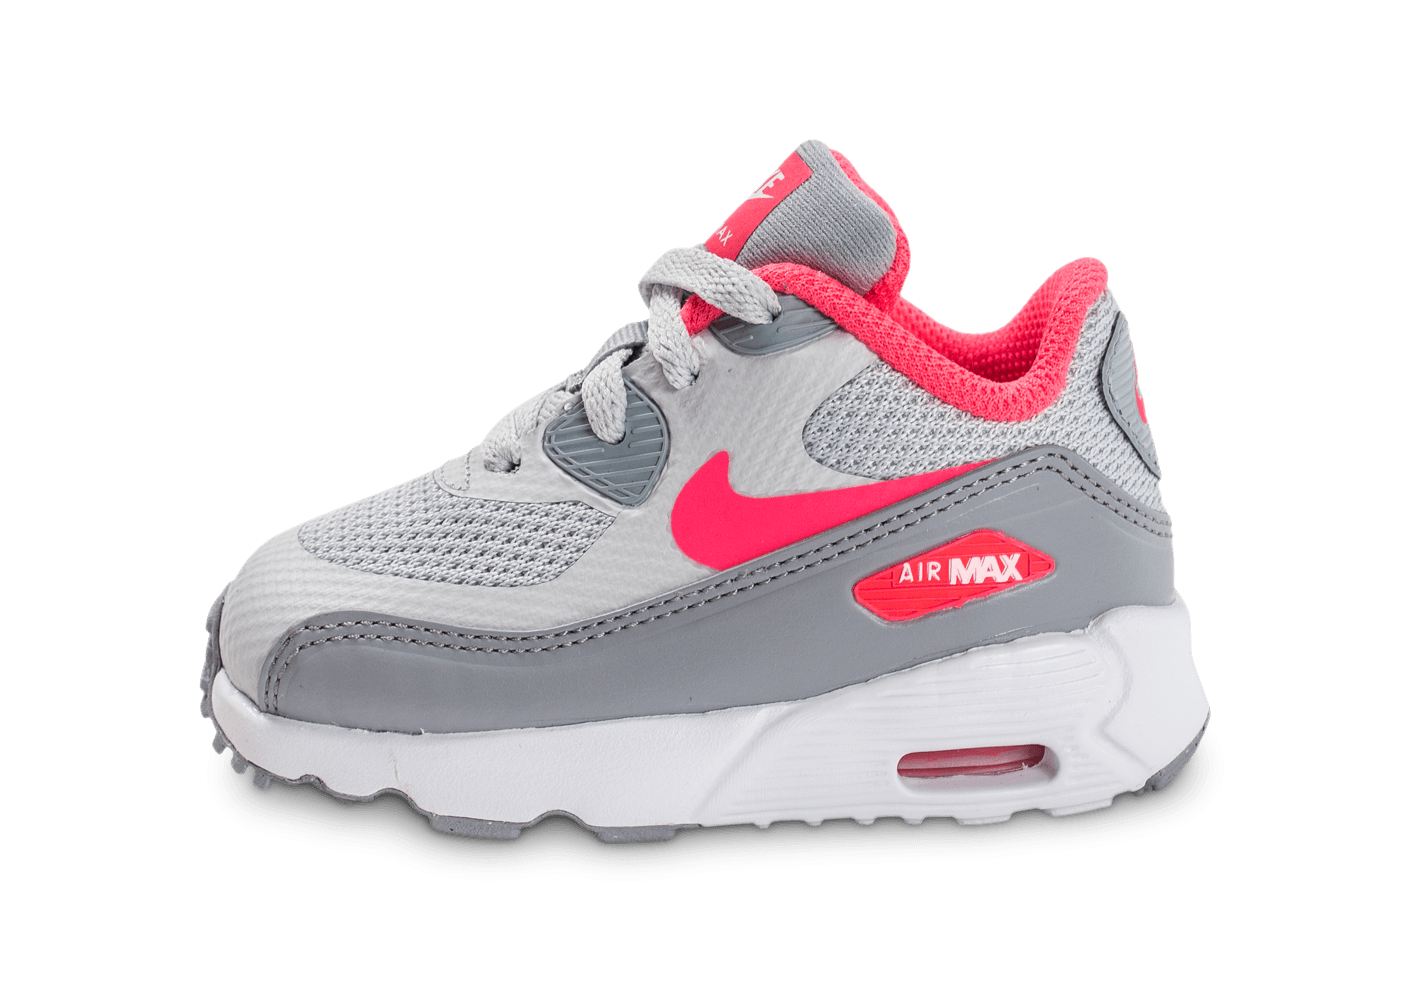 nike air max 90 ultra b b grise et rose chaussures enfant chausport. Black Bedroom Furniture Sets. Home Design Ideas